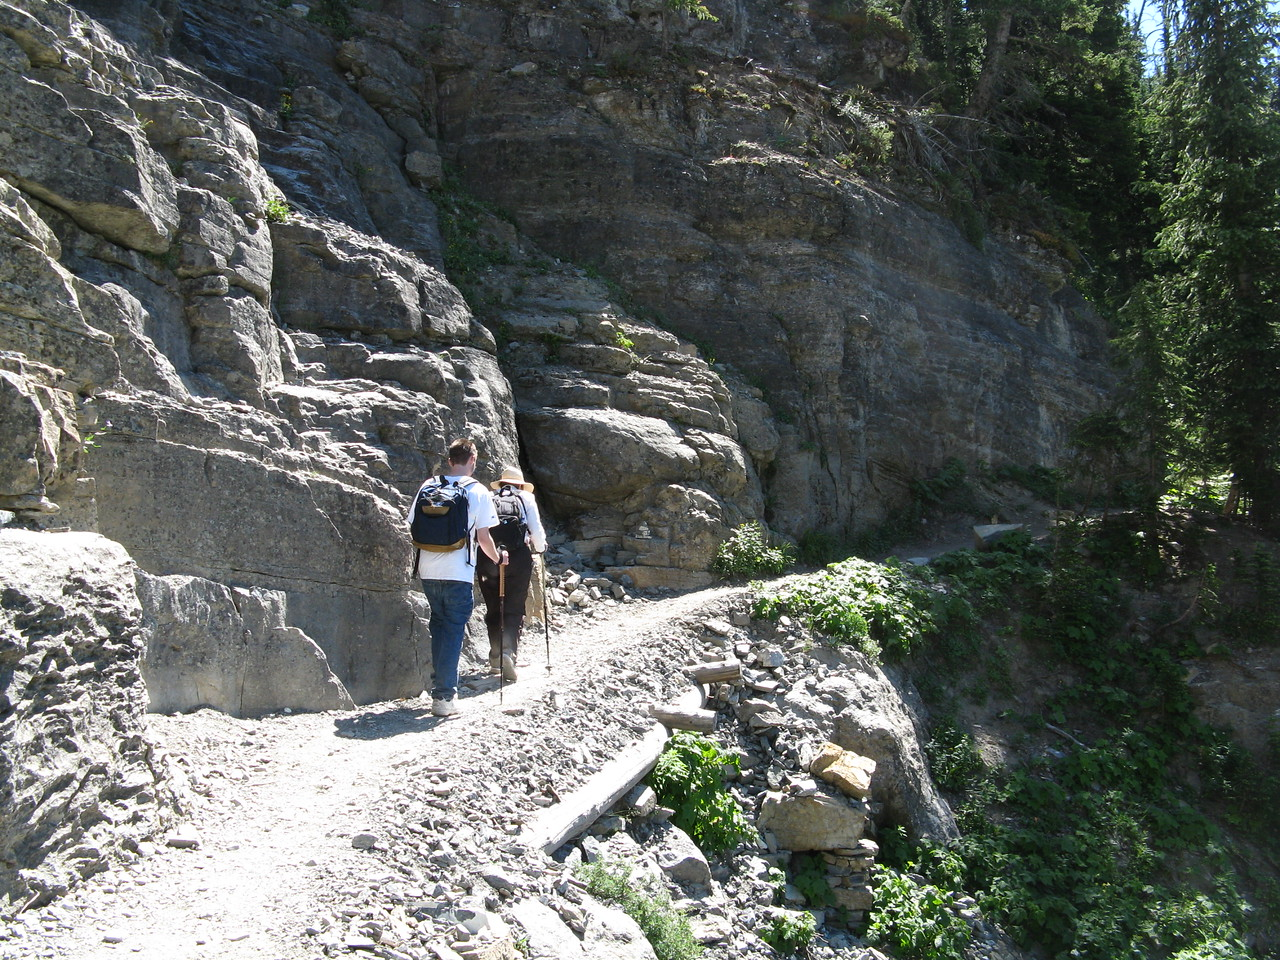 The trail climbs away from the rock ledge.